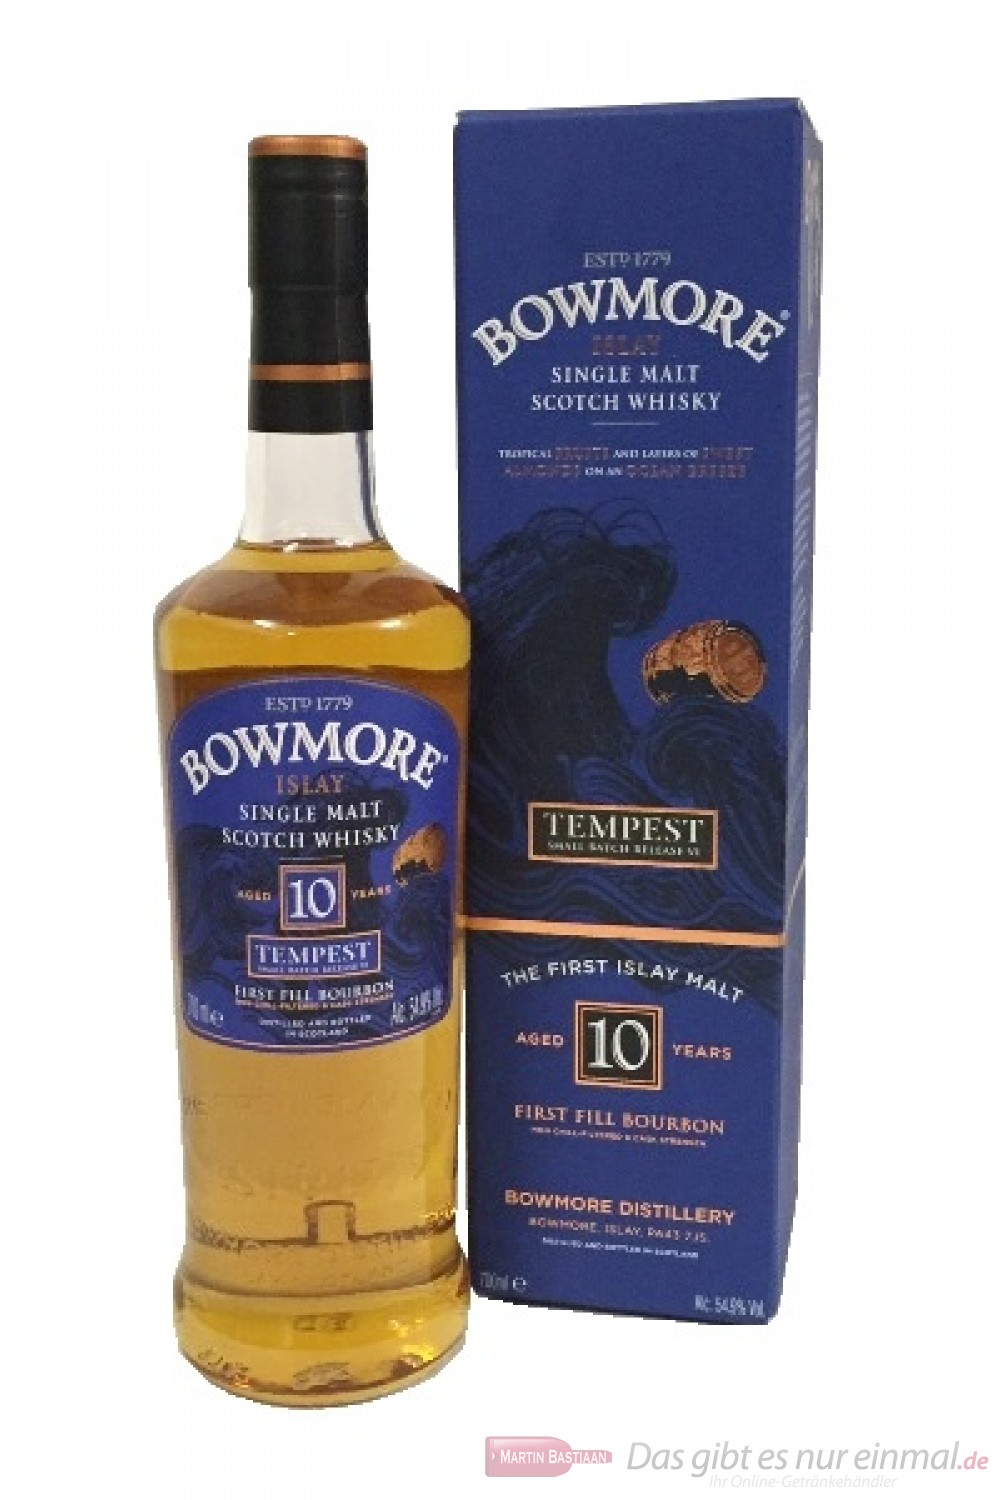 Bowmore Tempest Batch 6